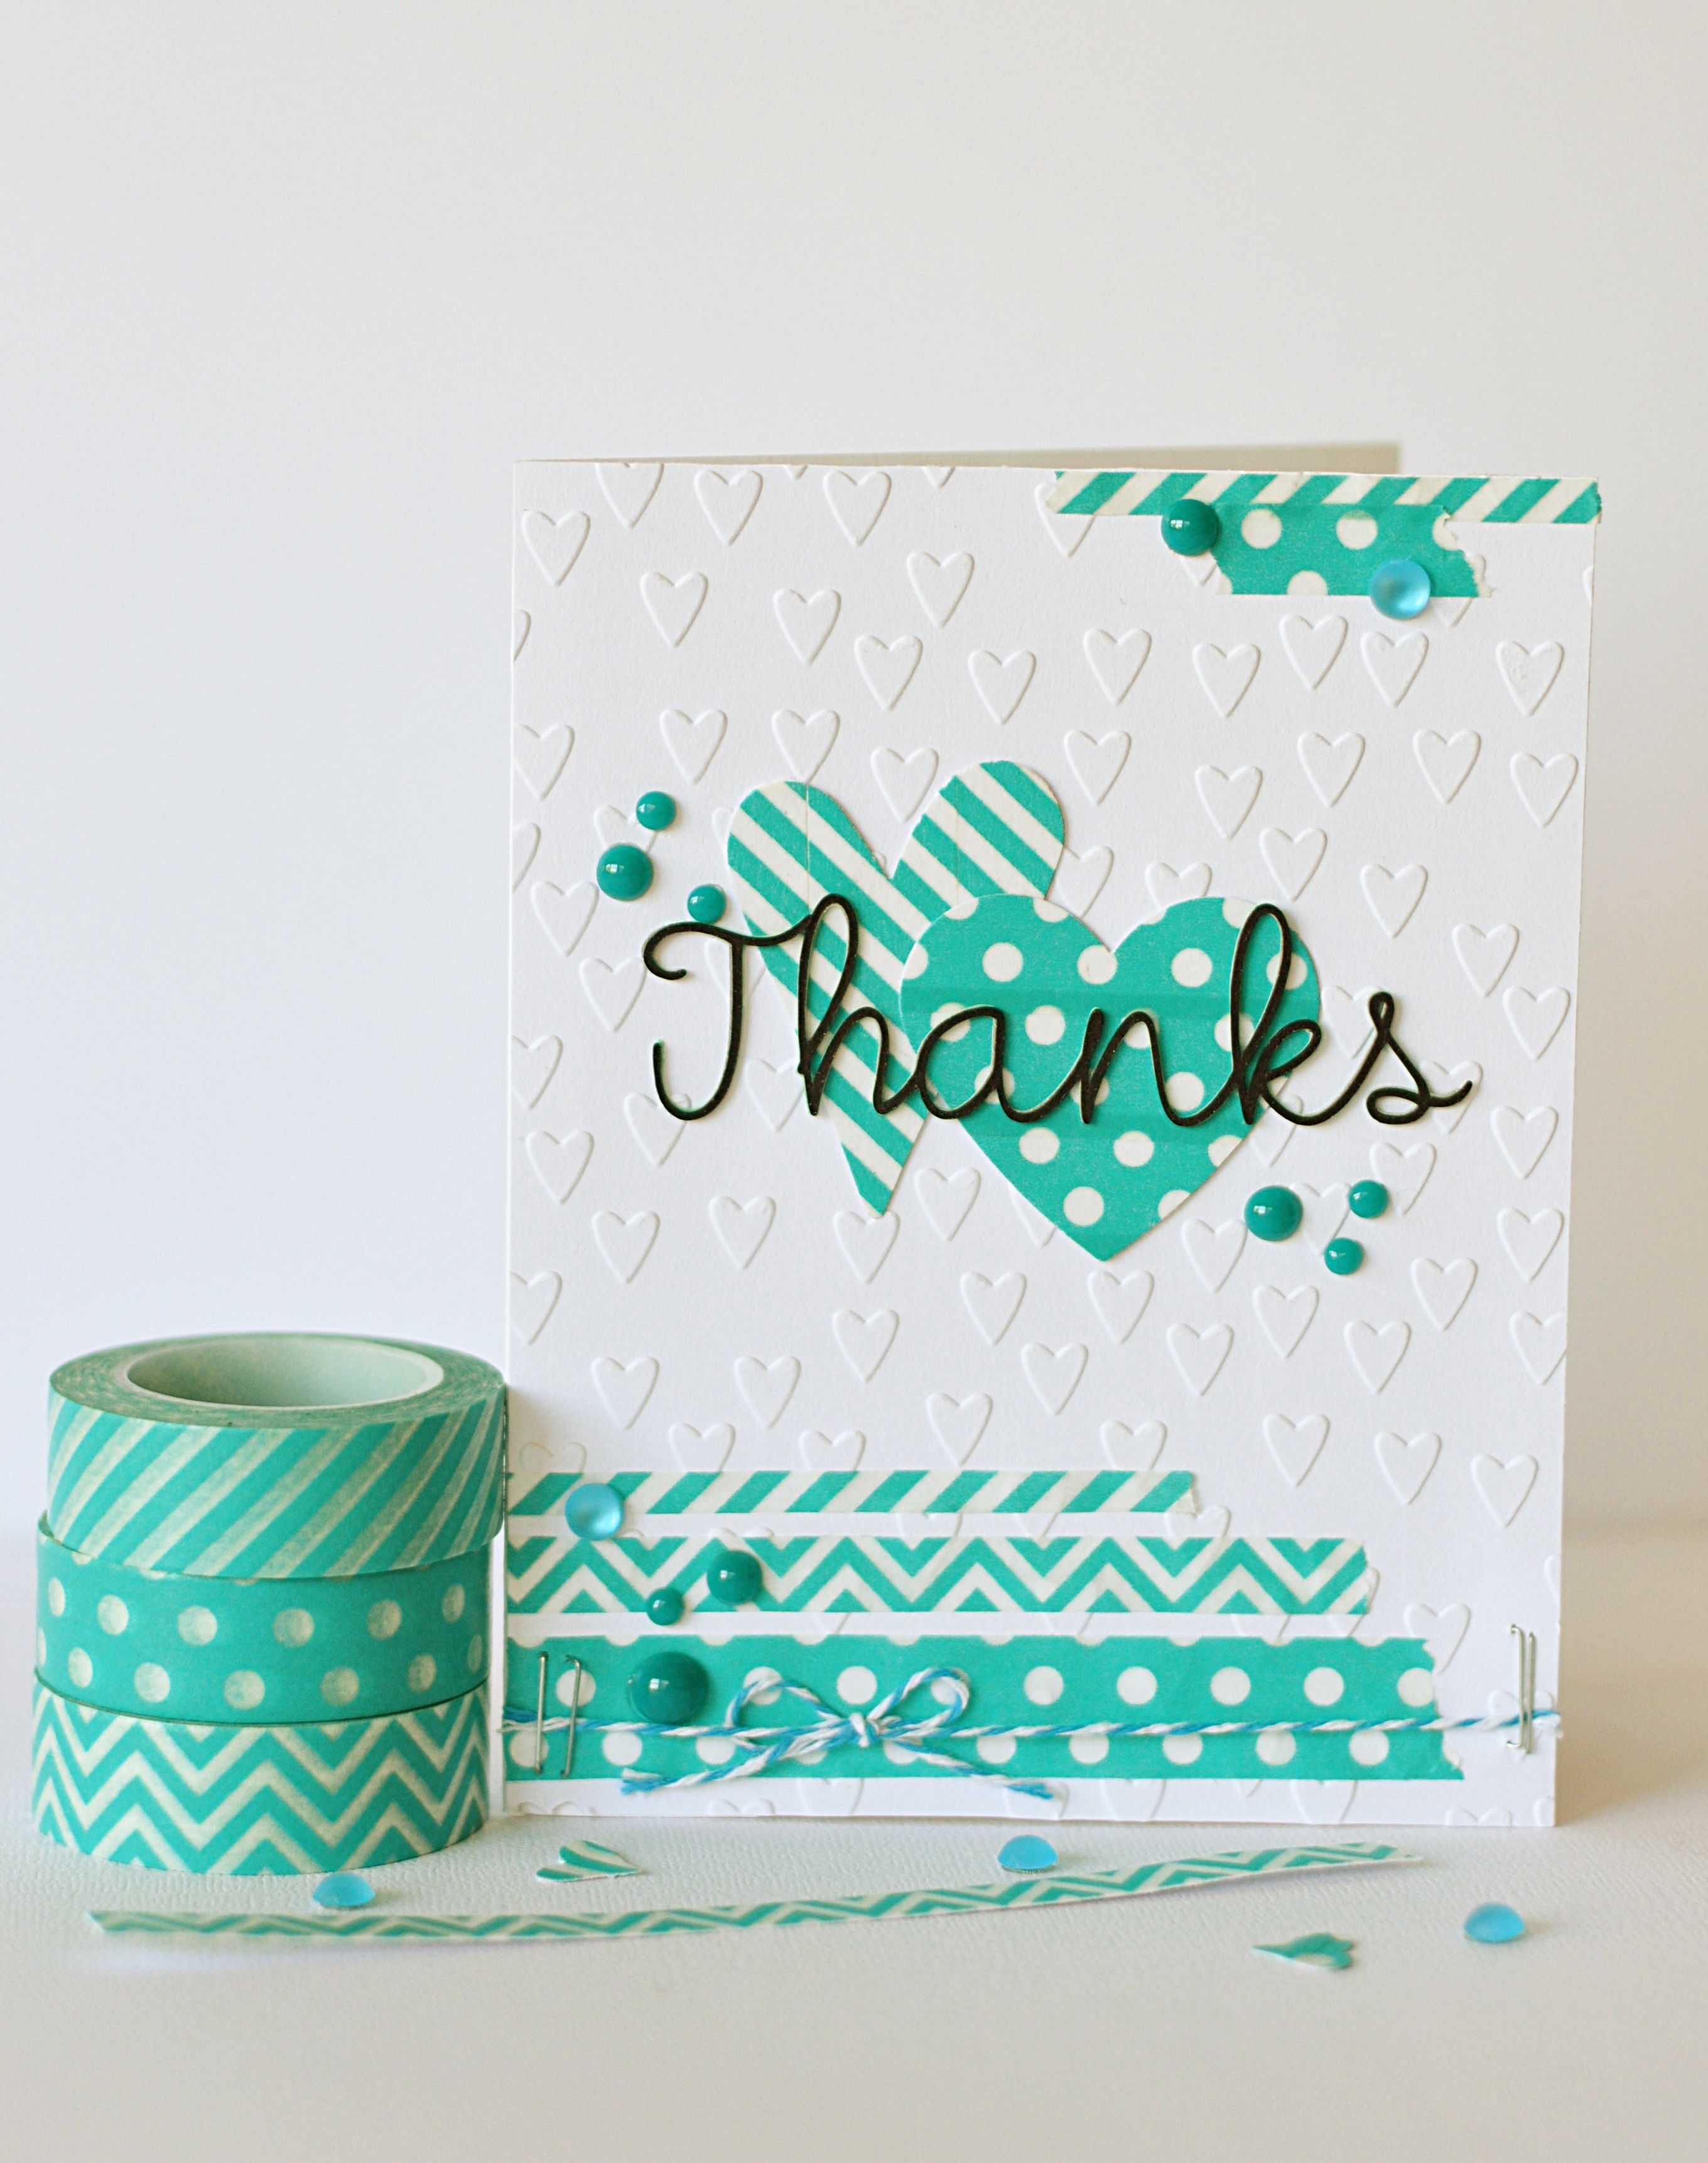 Card Making Ideas Using Washi Tape Part - 17: Thanks Card With New Queen And Co. Trendy Tapes In Turquoise. Part Of Our · Washi  Tape CardsWashi ...